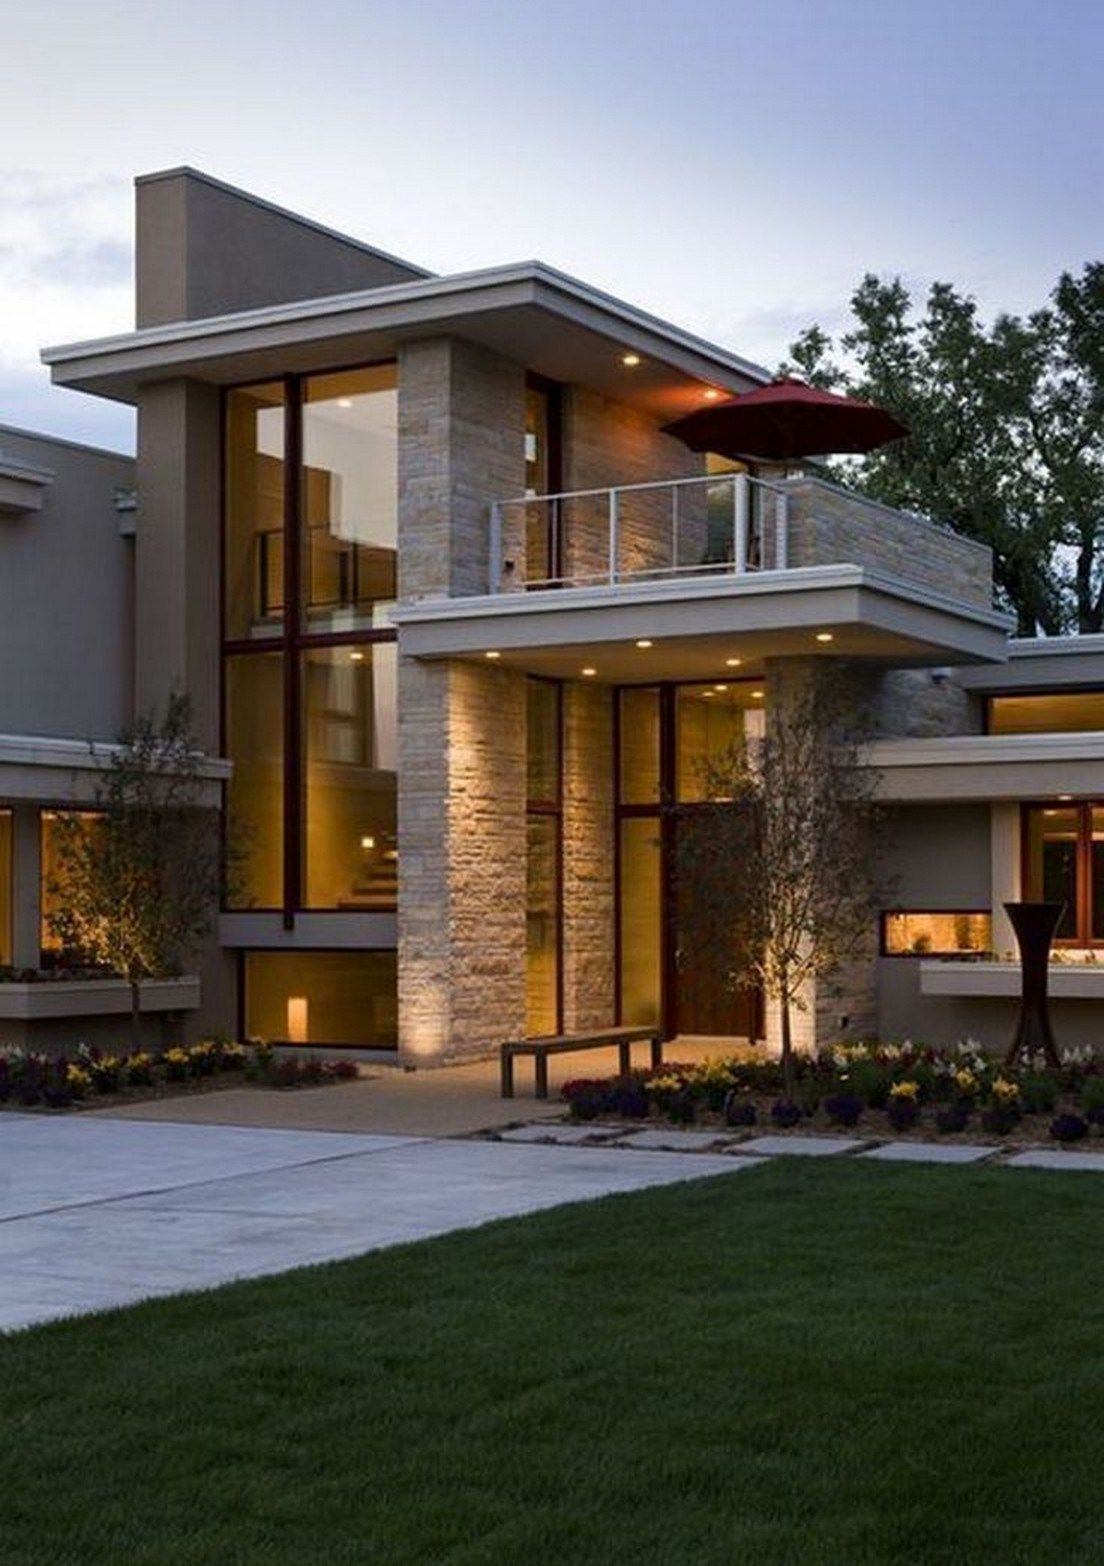 Get Exterior Design Ideas How To Make Your Small House Look